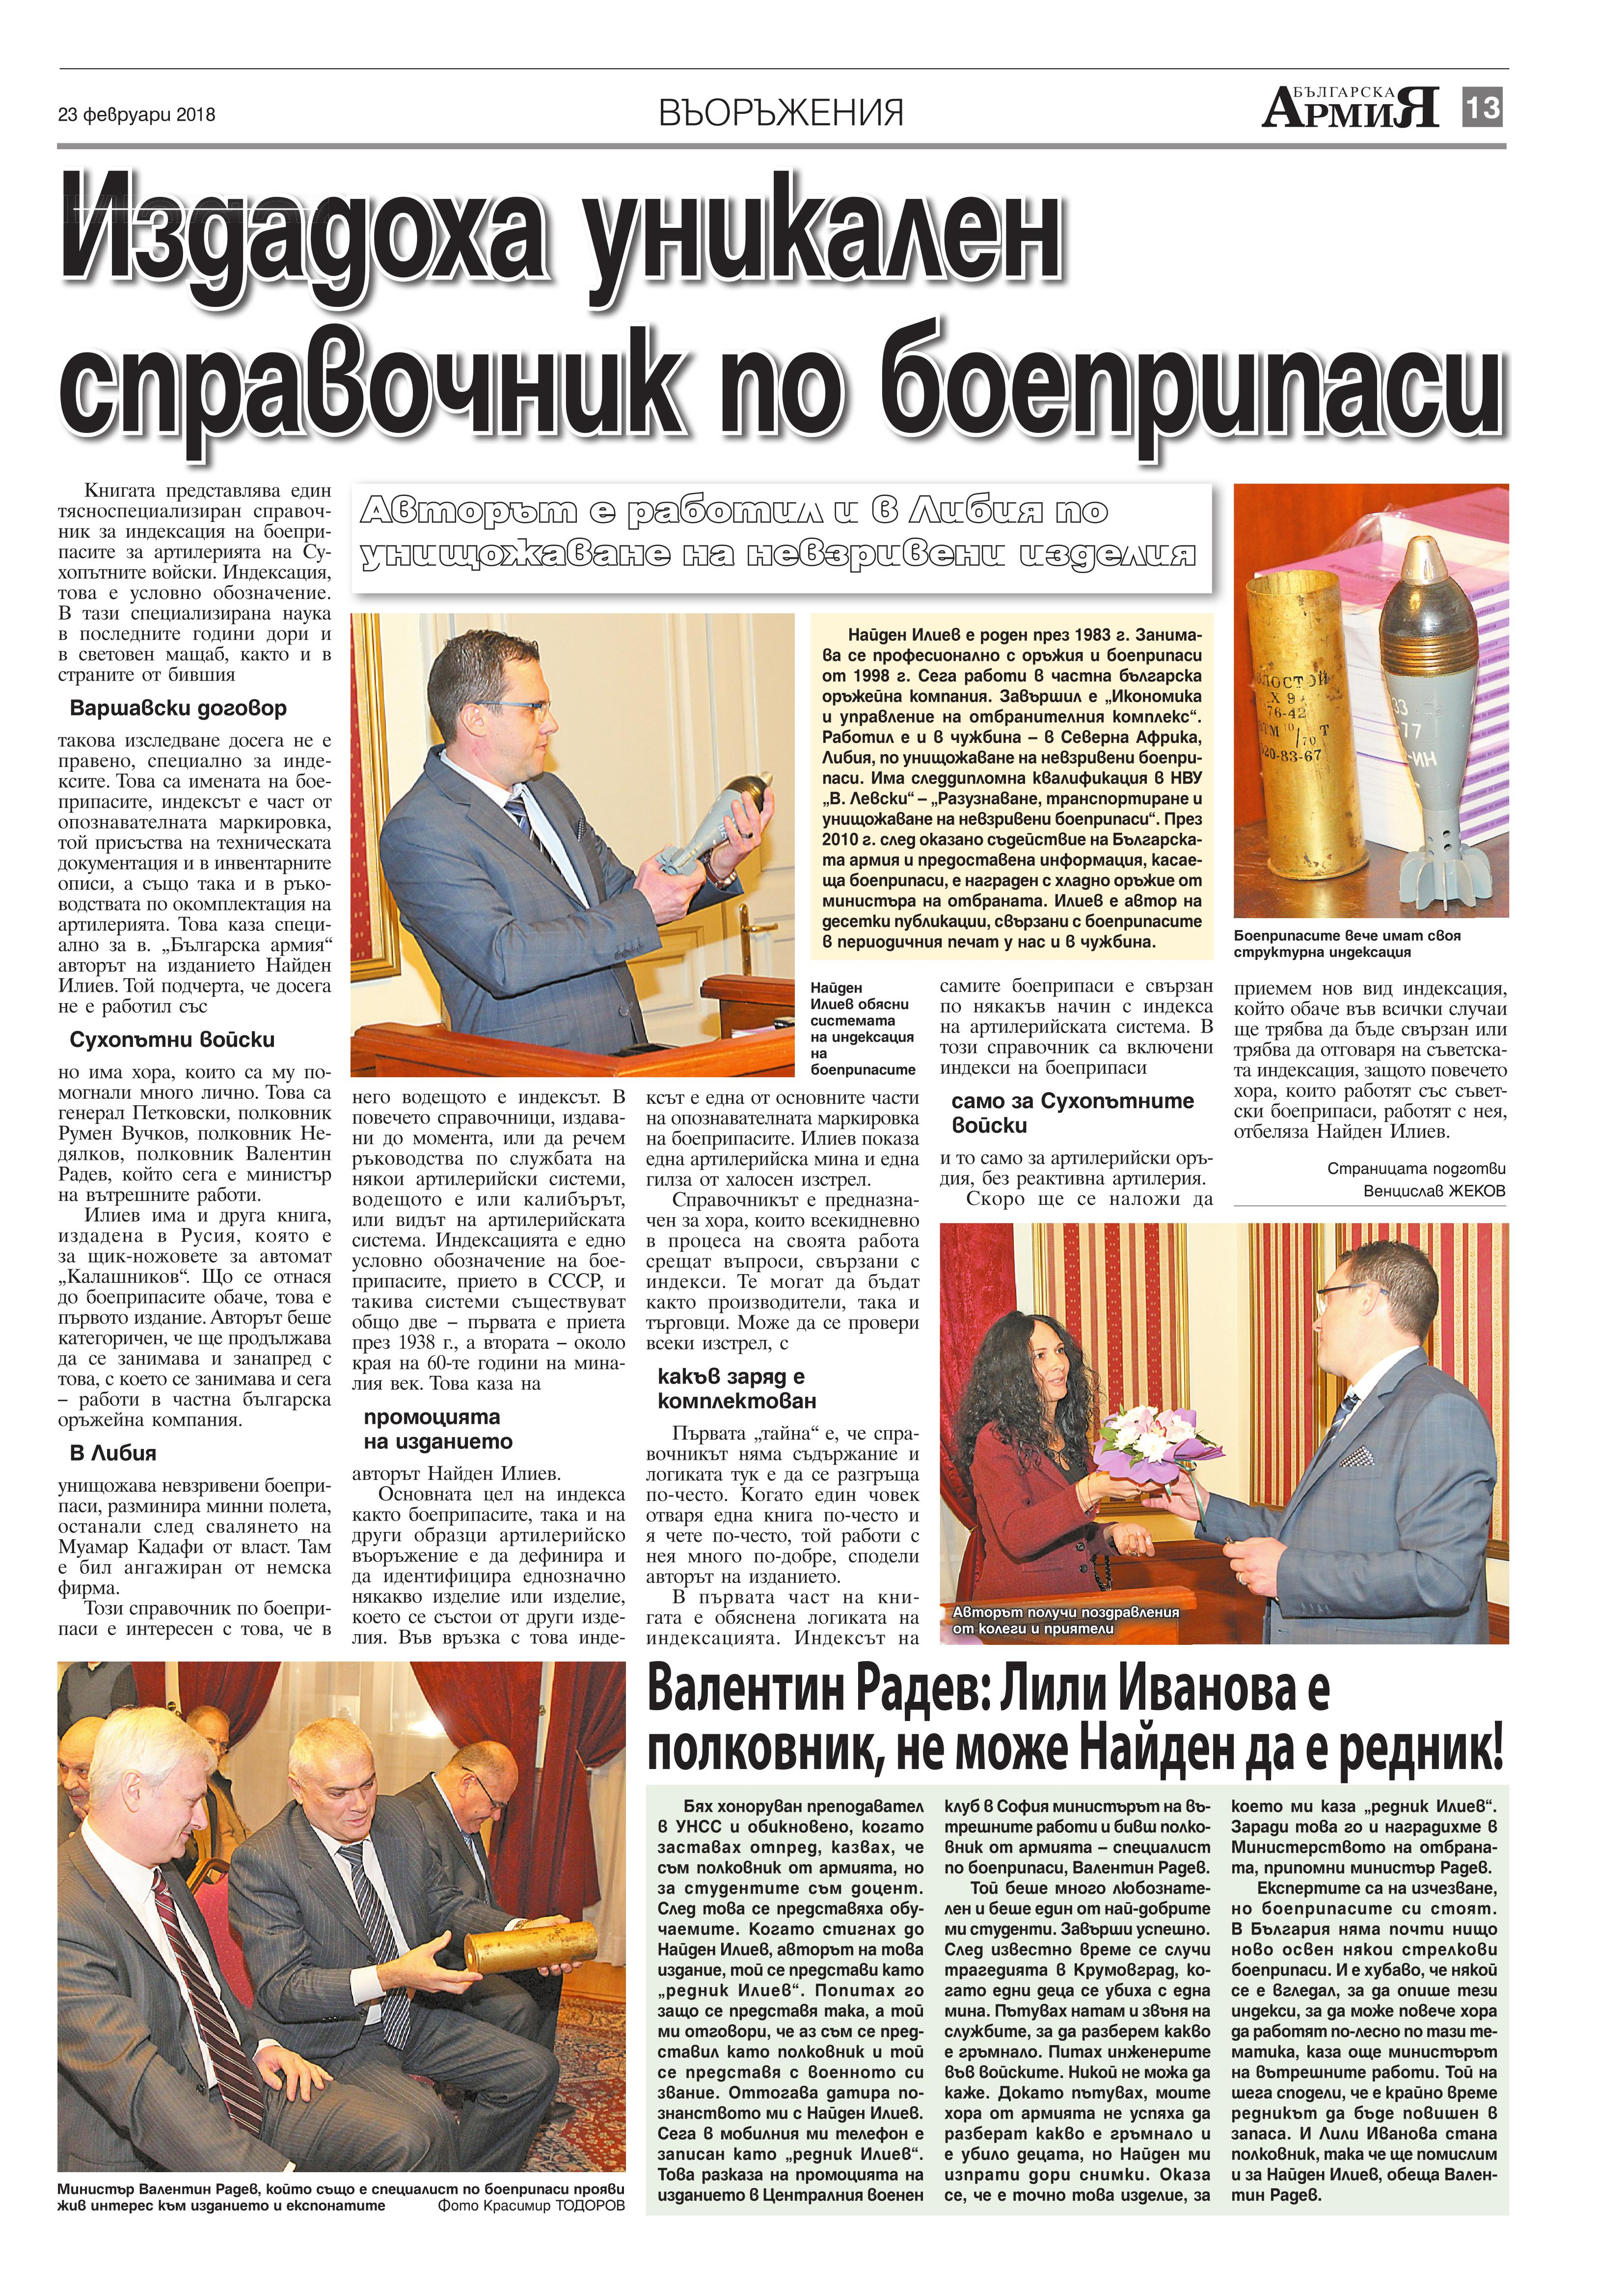 https://armymedia.bg/wp-content/uploads/2015/06/13.page1_-40.jpg